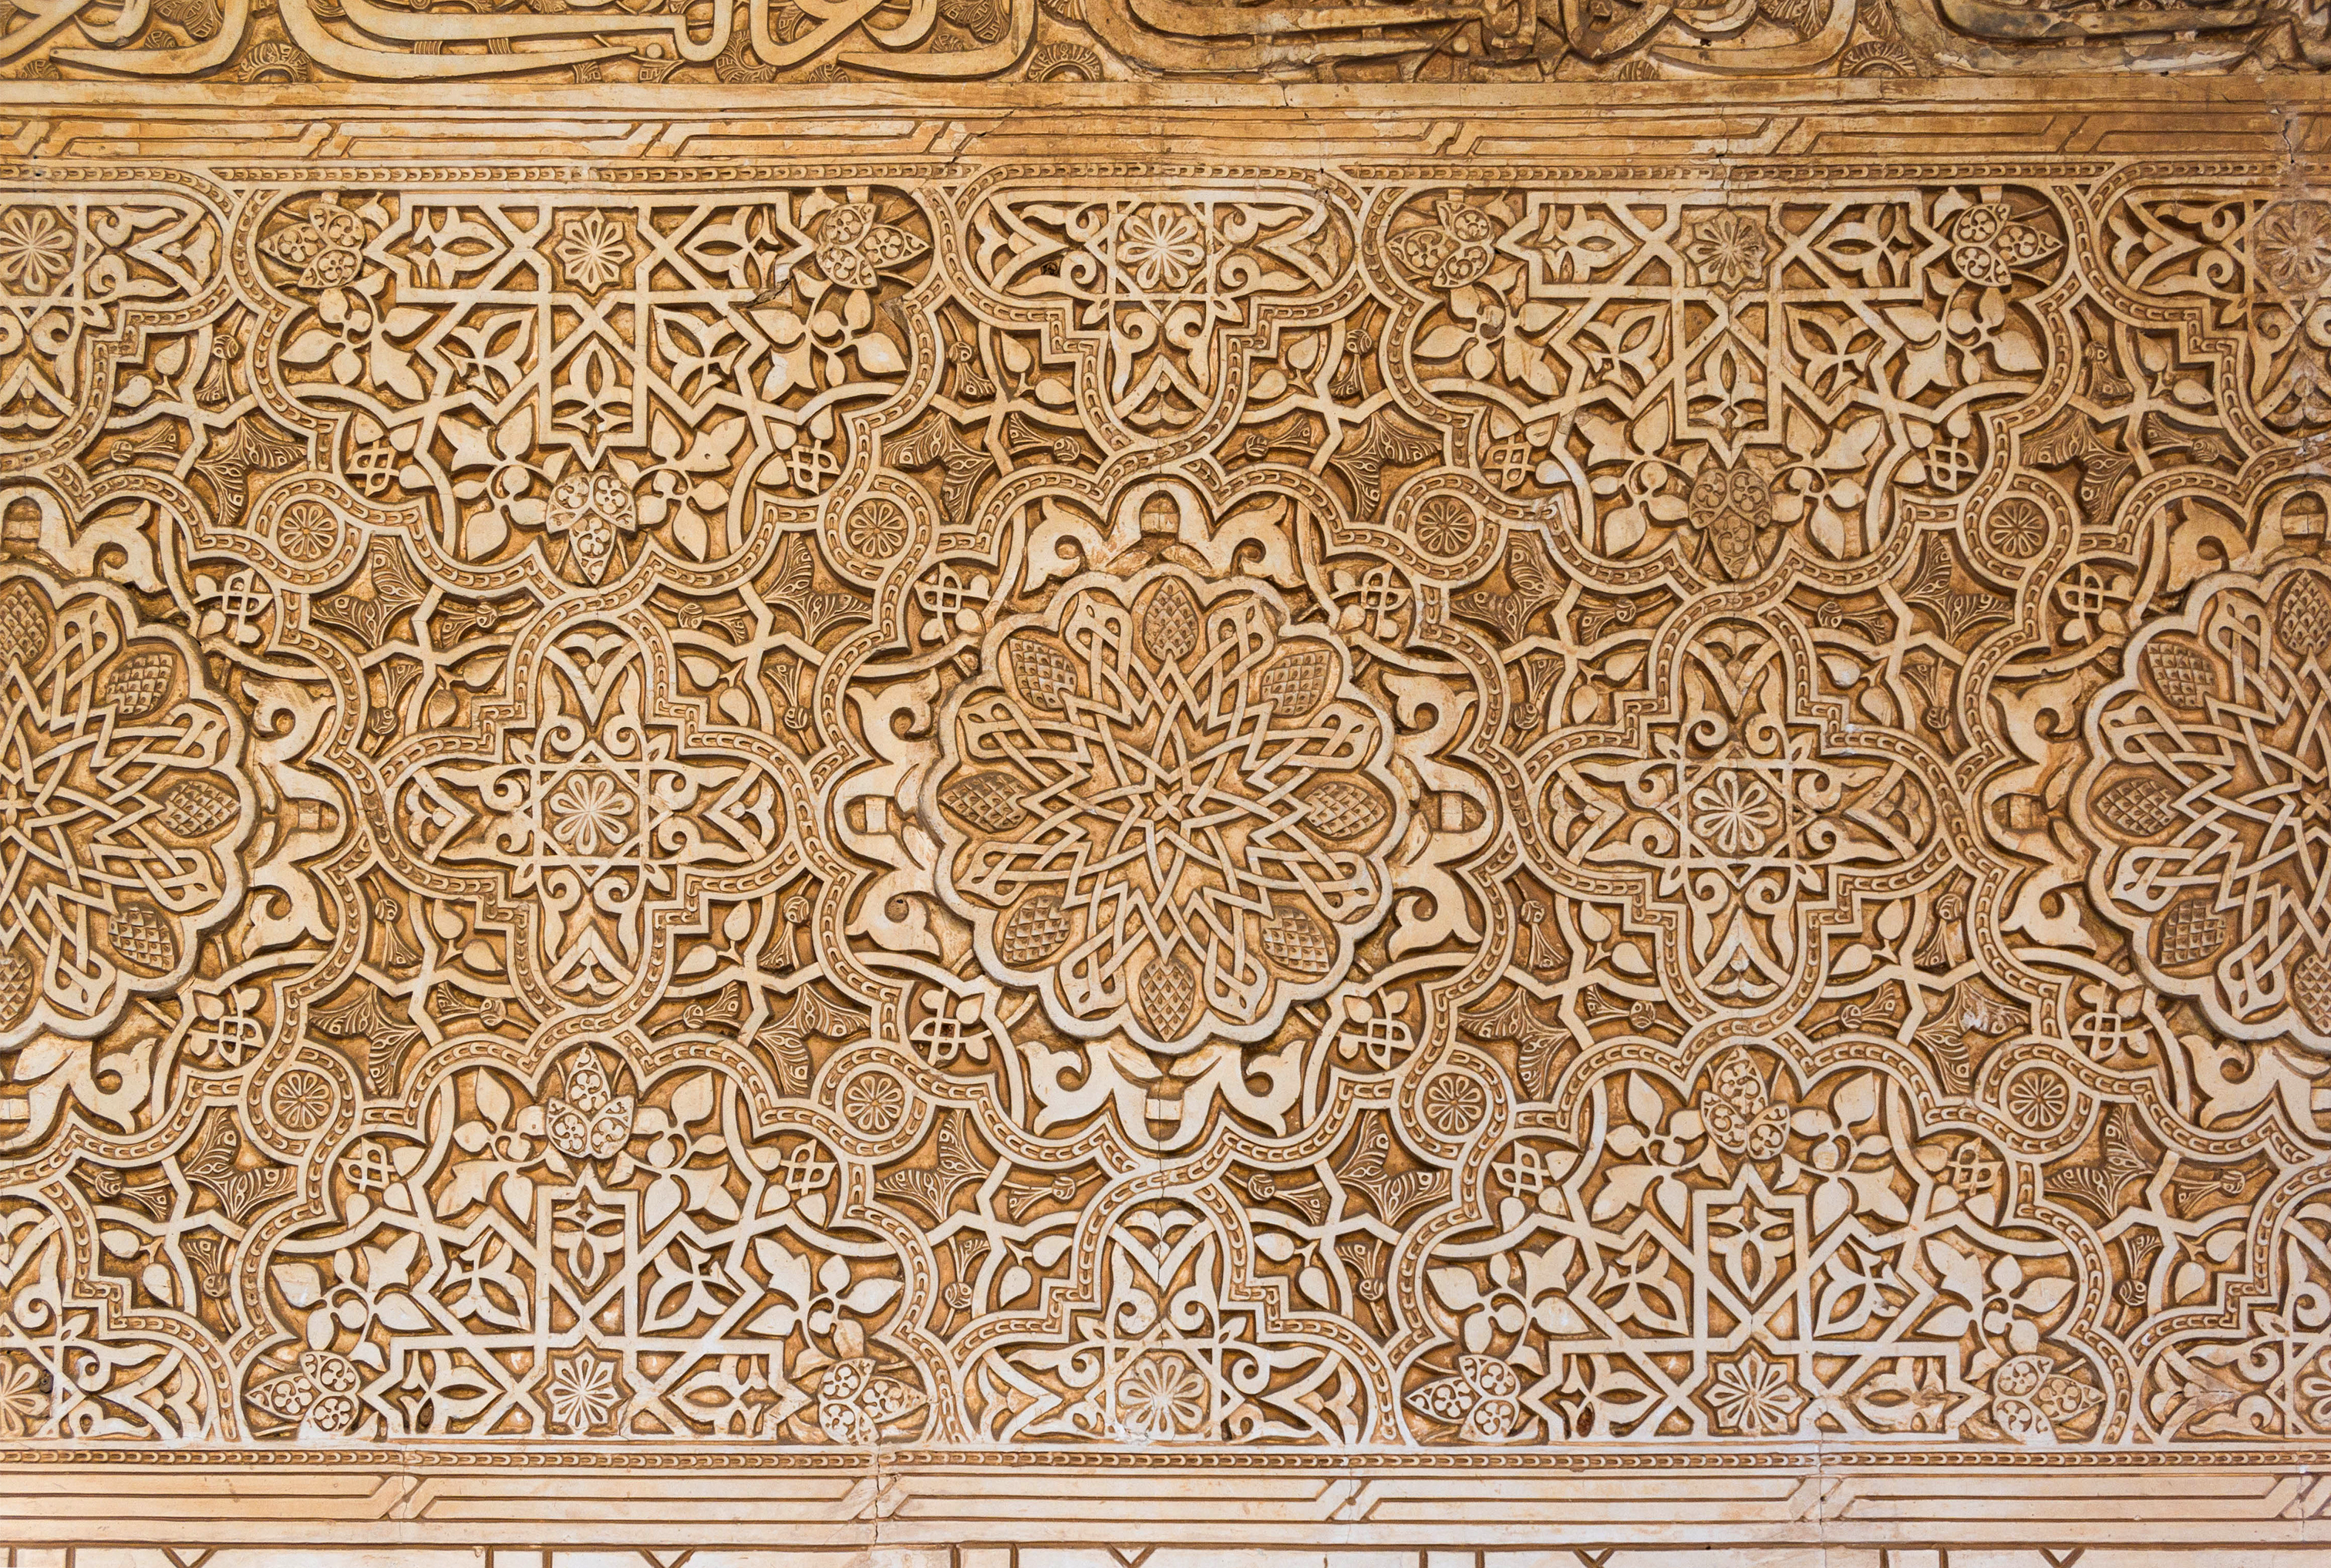 Islamic Arabesque Patterns Joy Studio Design Gallery